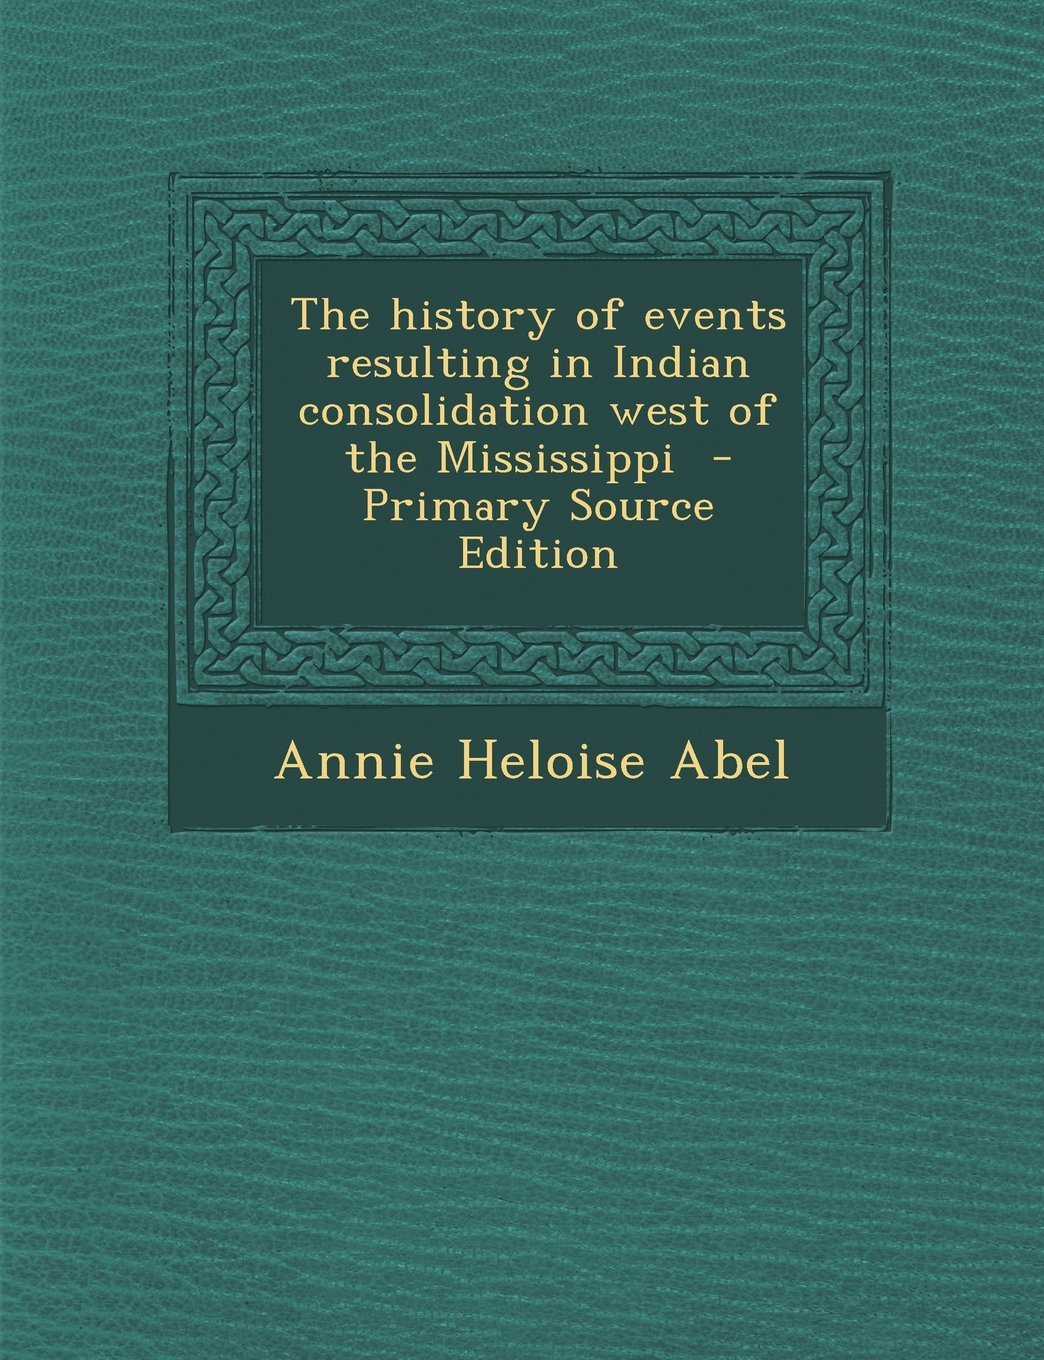 The history of events resulting in Indian consolidation west of the Mississippi pdf